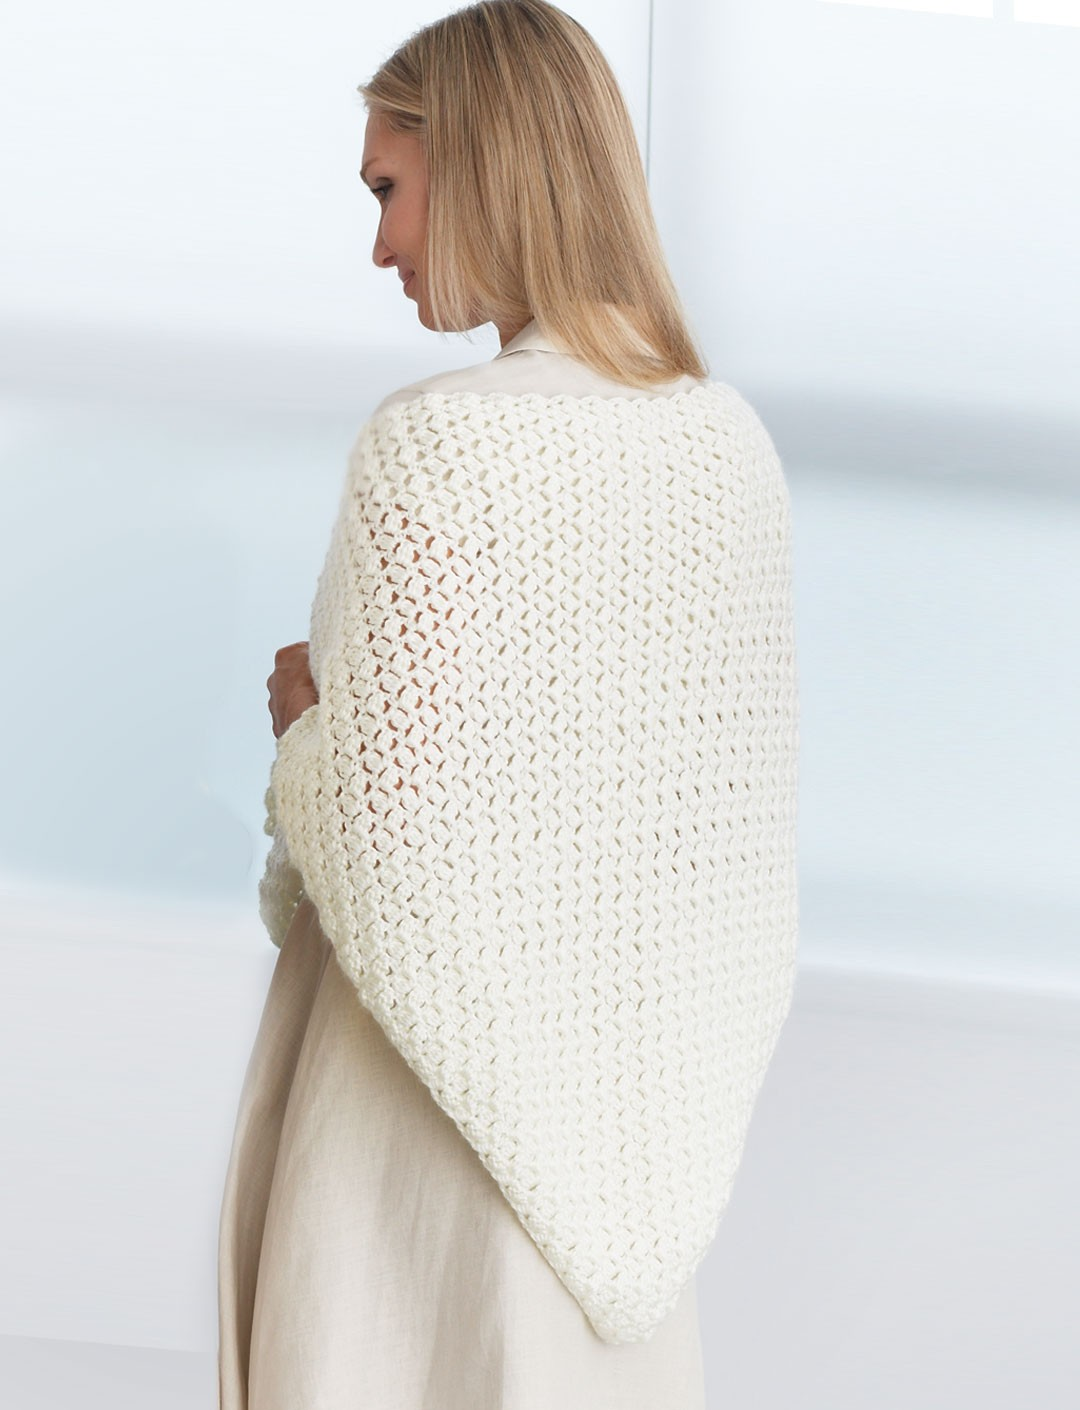 Free Easy Crochet Patterns For Prayer Shawls : Crochet Prayer Shawl - Patterns Yarnspirations